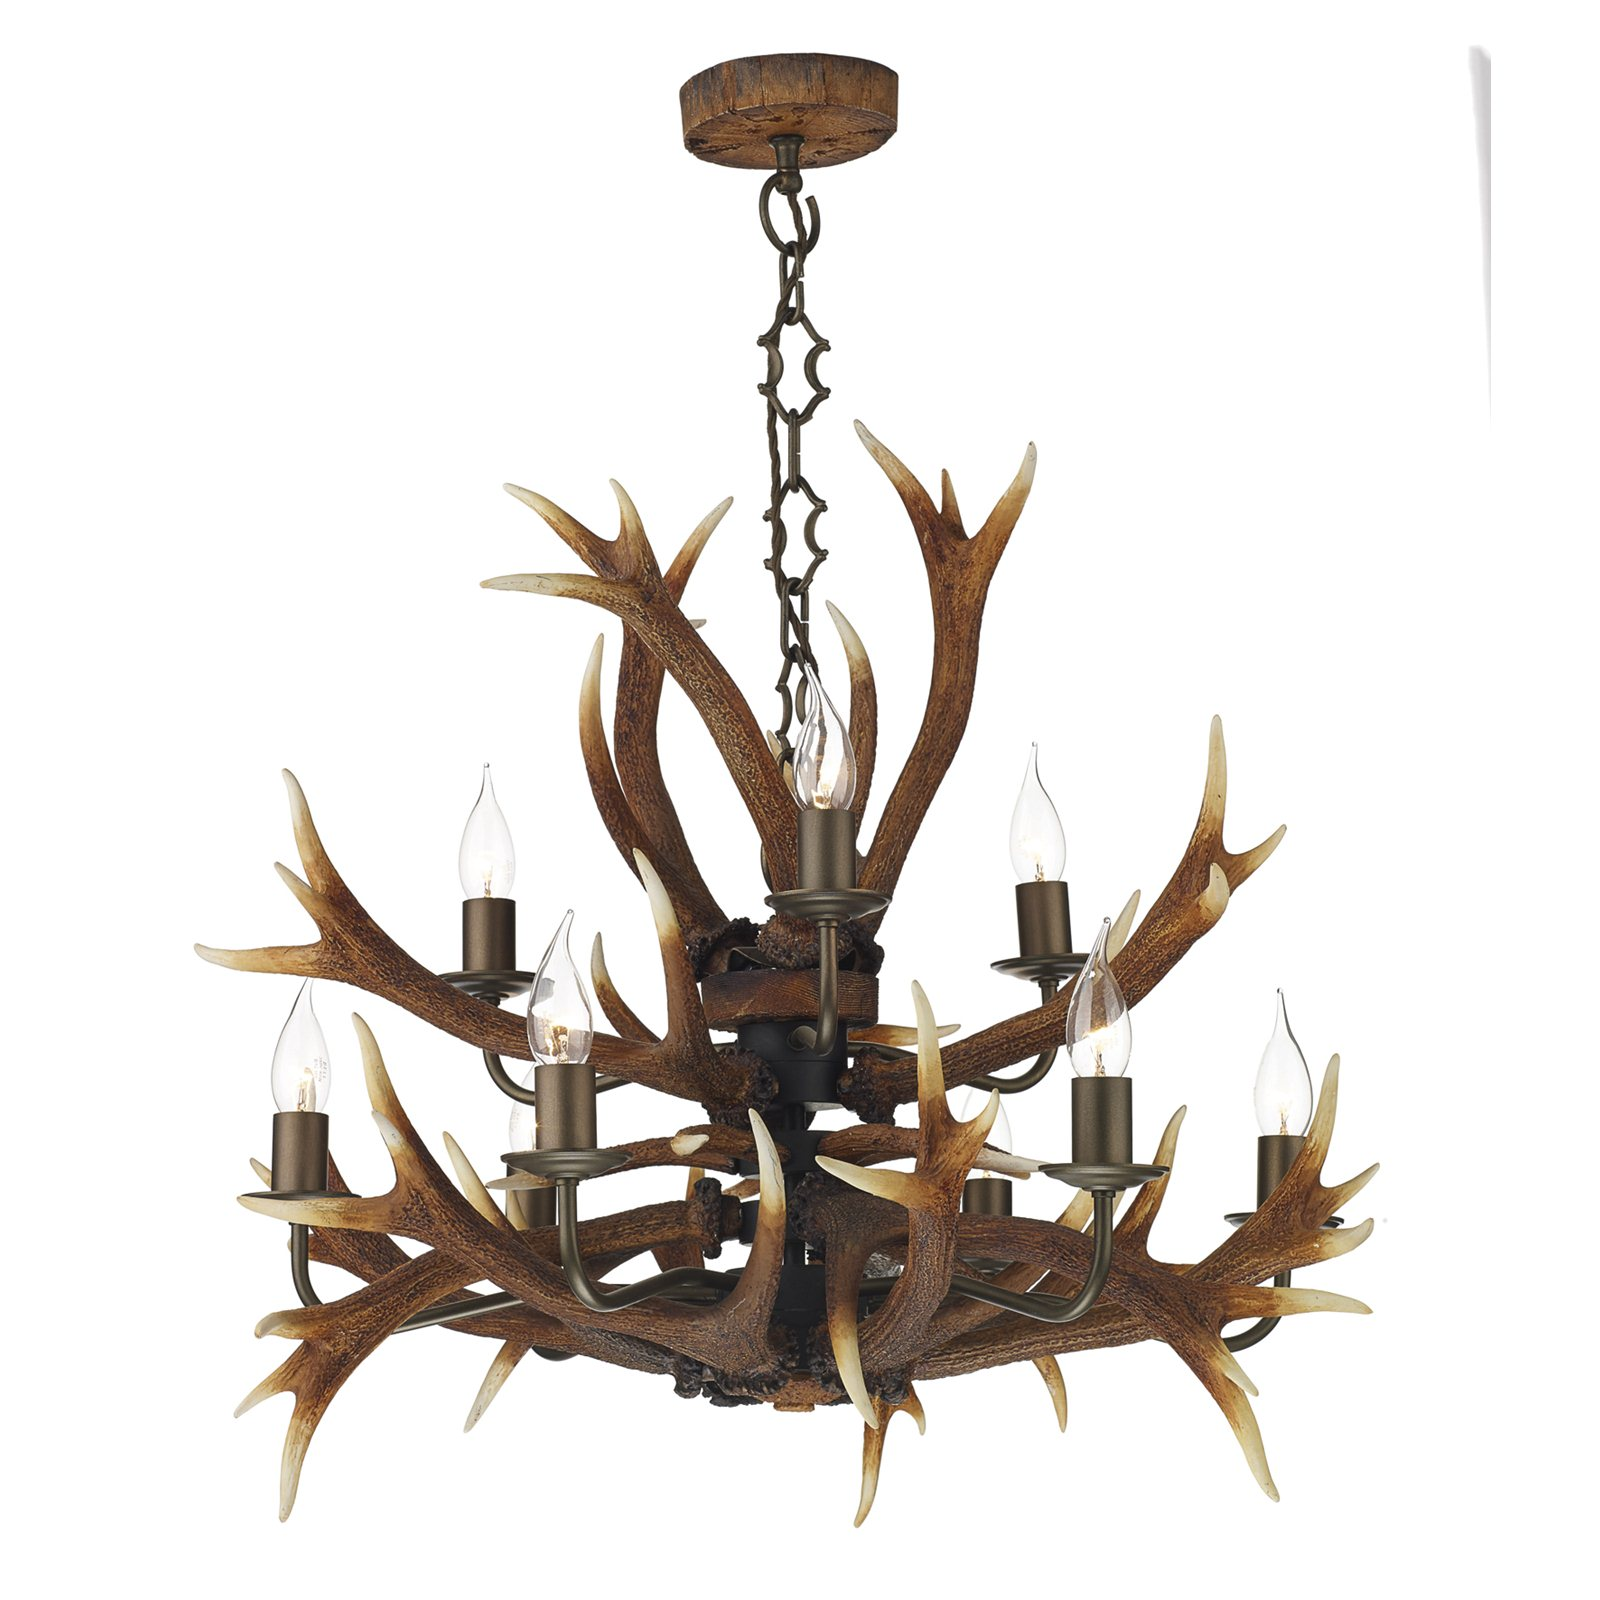 Hicks and hicks antler tiered pendant light 9 hicks hicks aloadofball